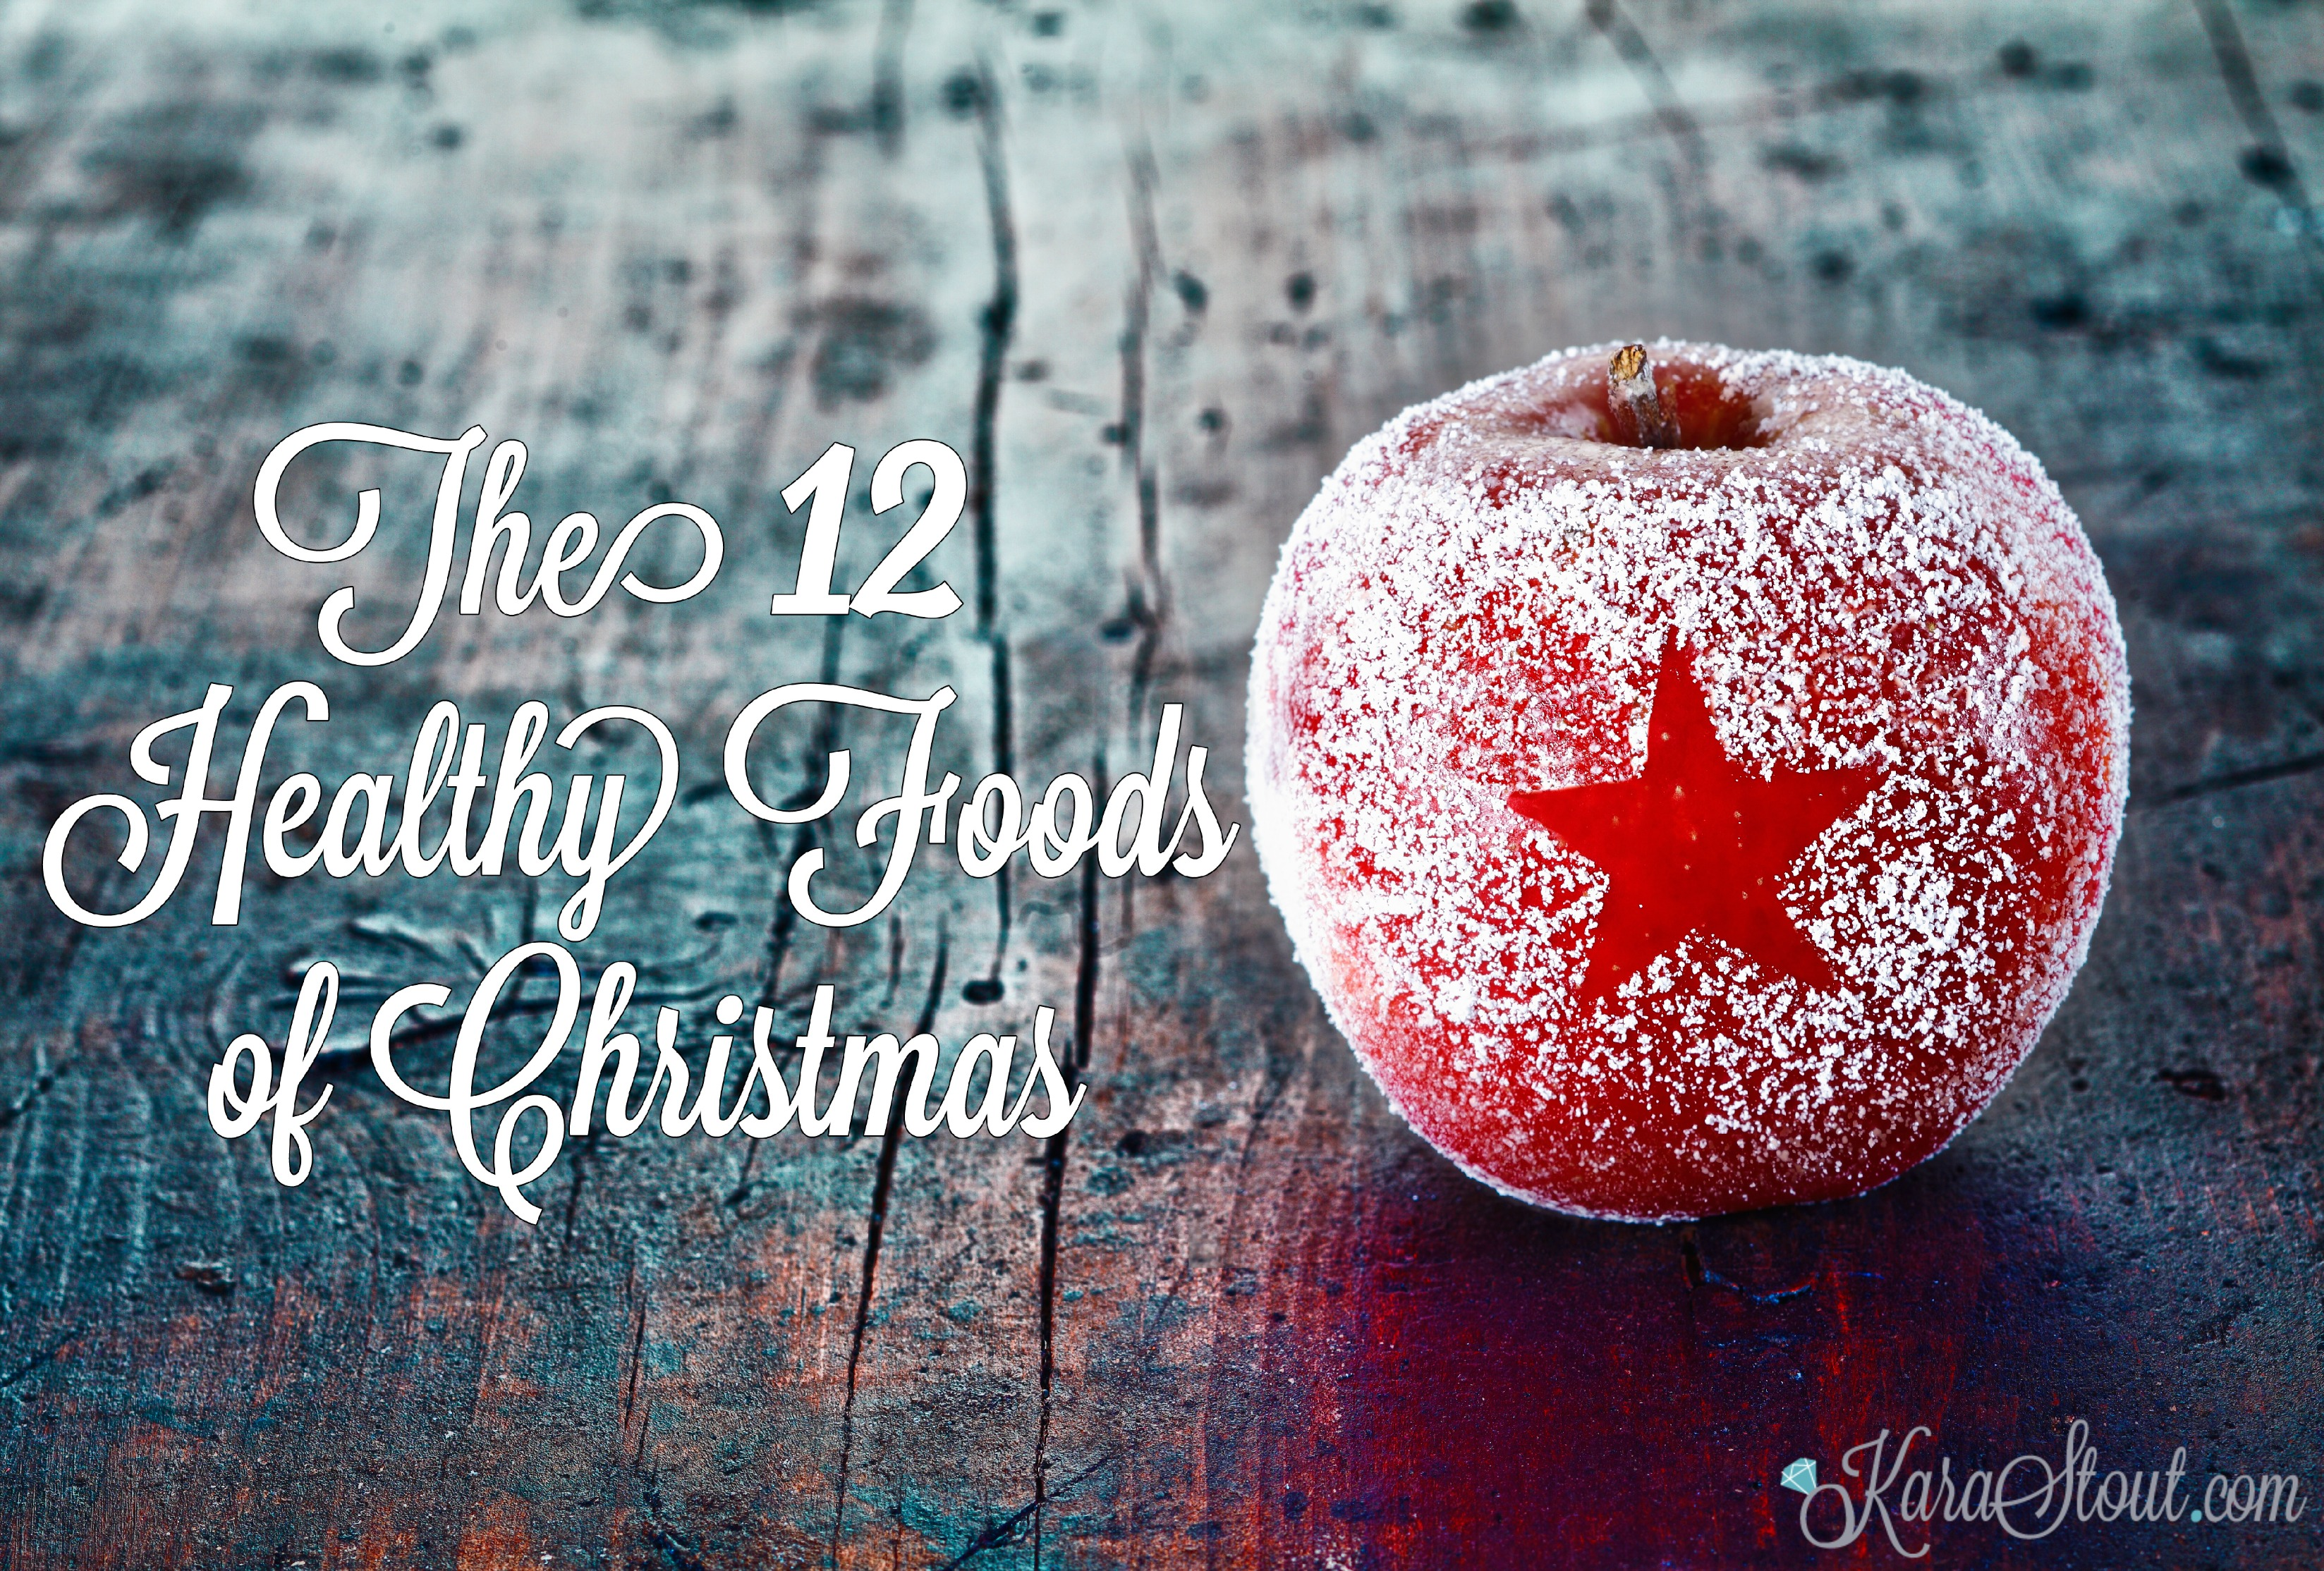 The 12 Healthy Foods of Christmas